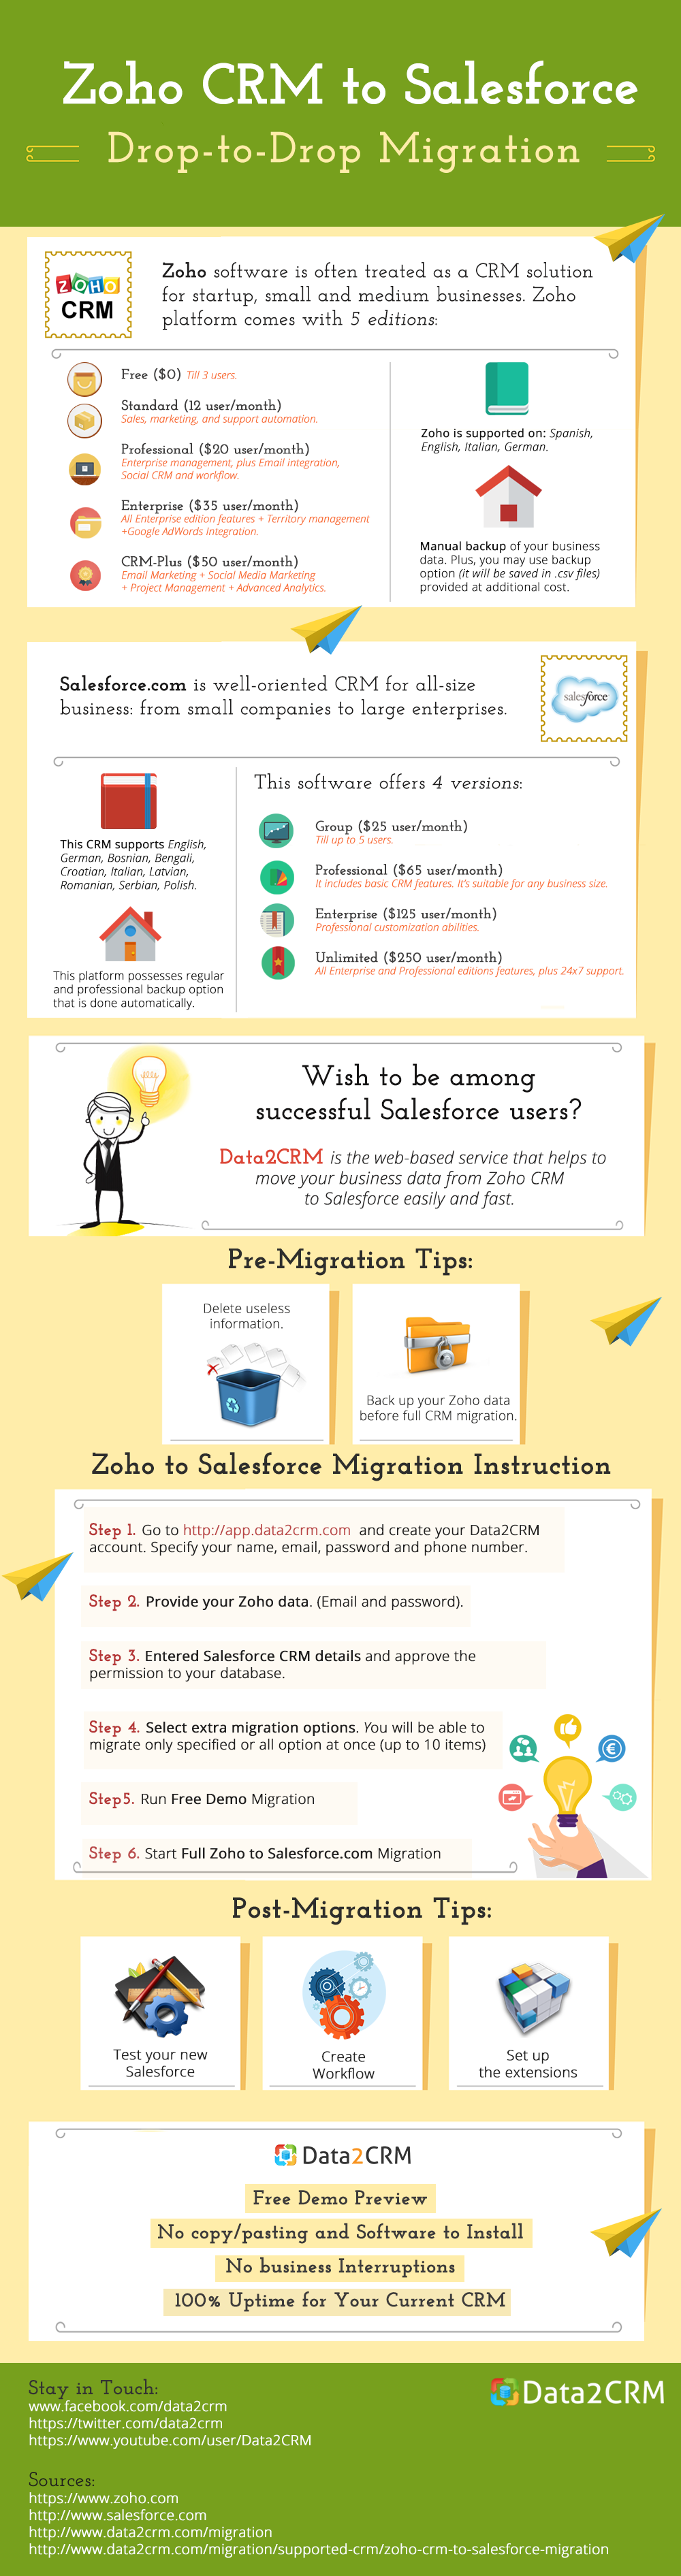 Migrating Zoho to Salesforce: Motivation and Means [Infographic]